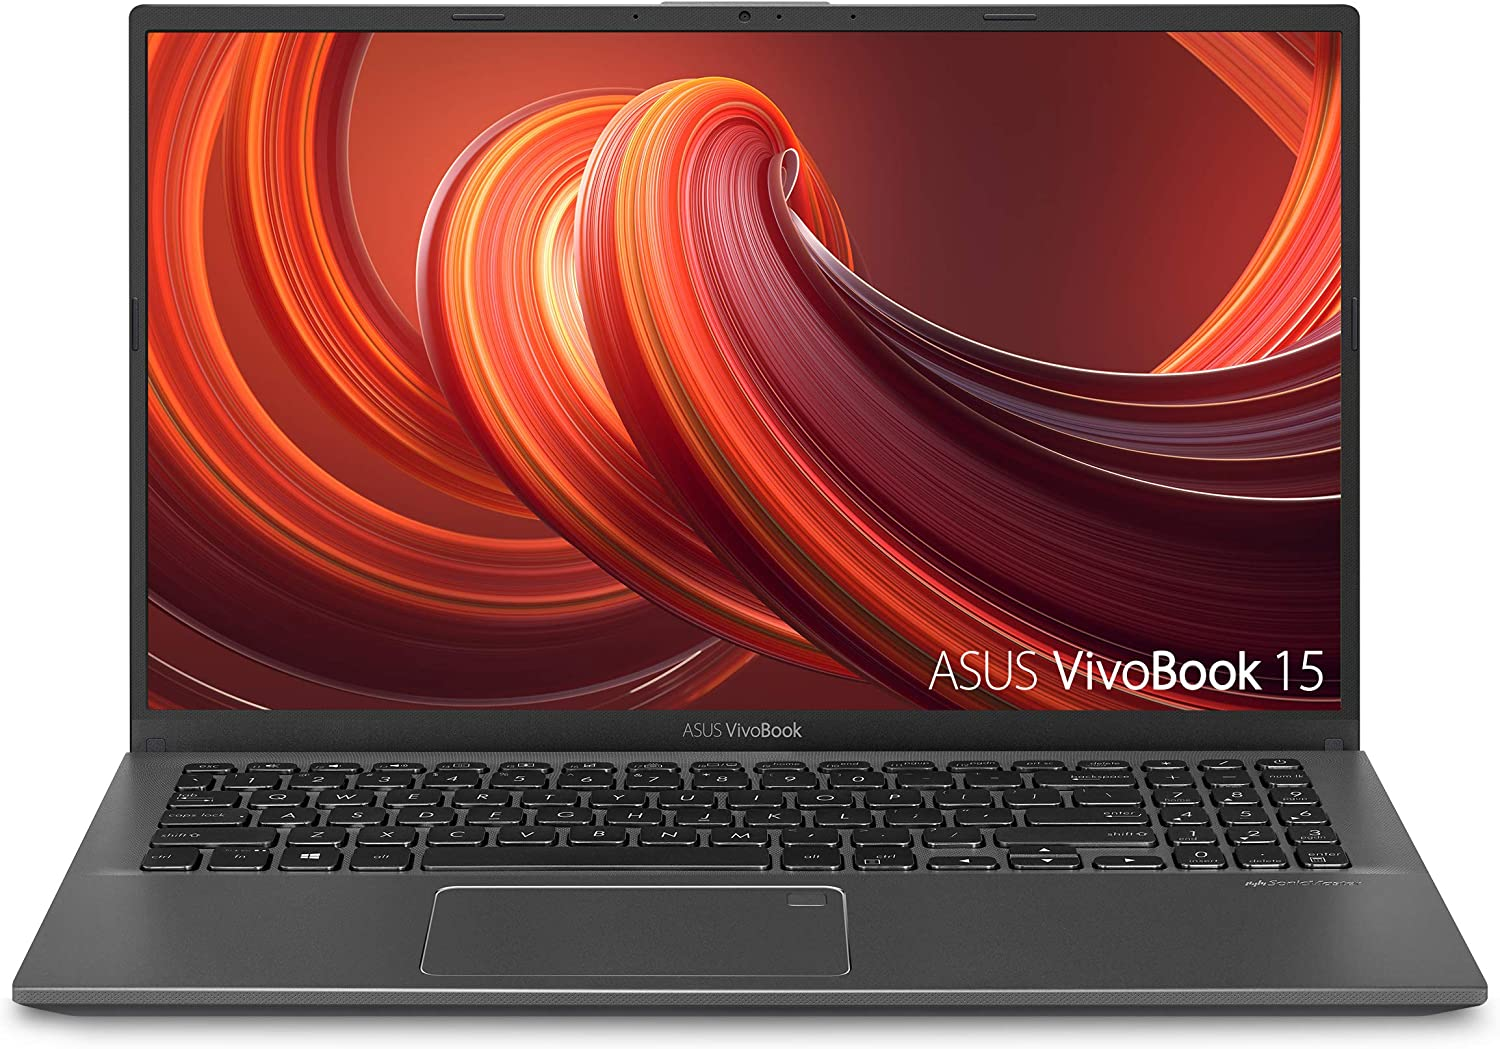 ASUS VivoBook 15 Thin and Light Laptop, 15.6